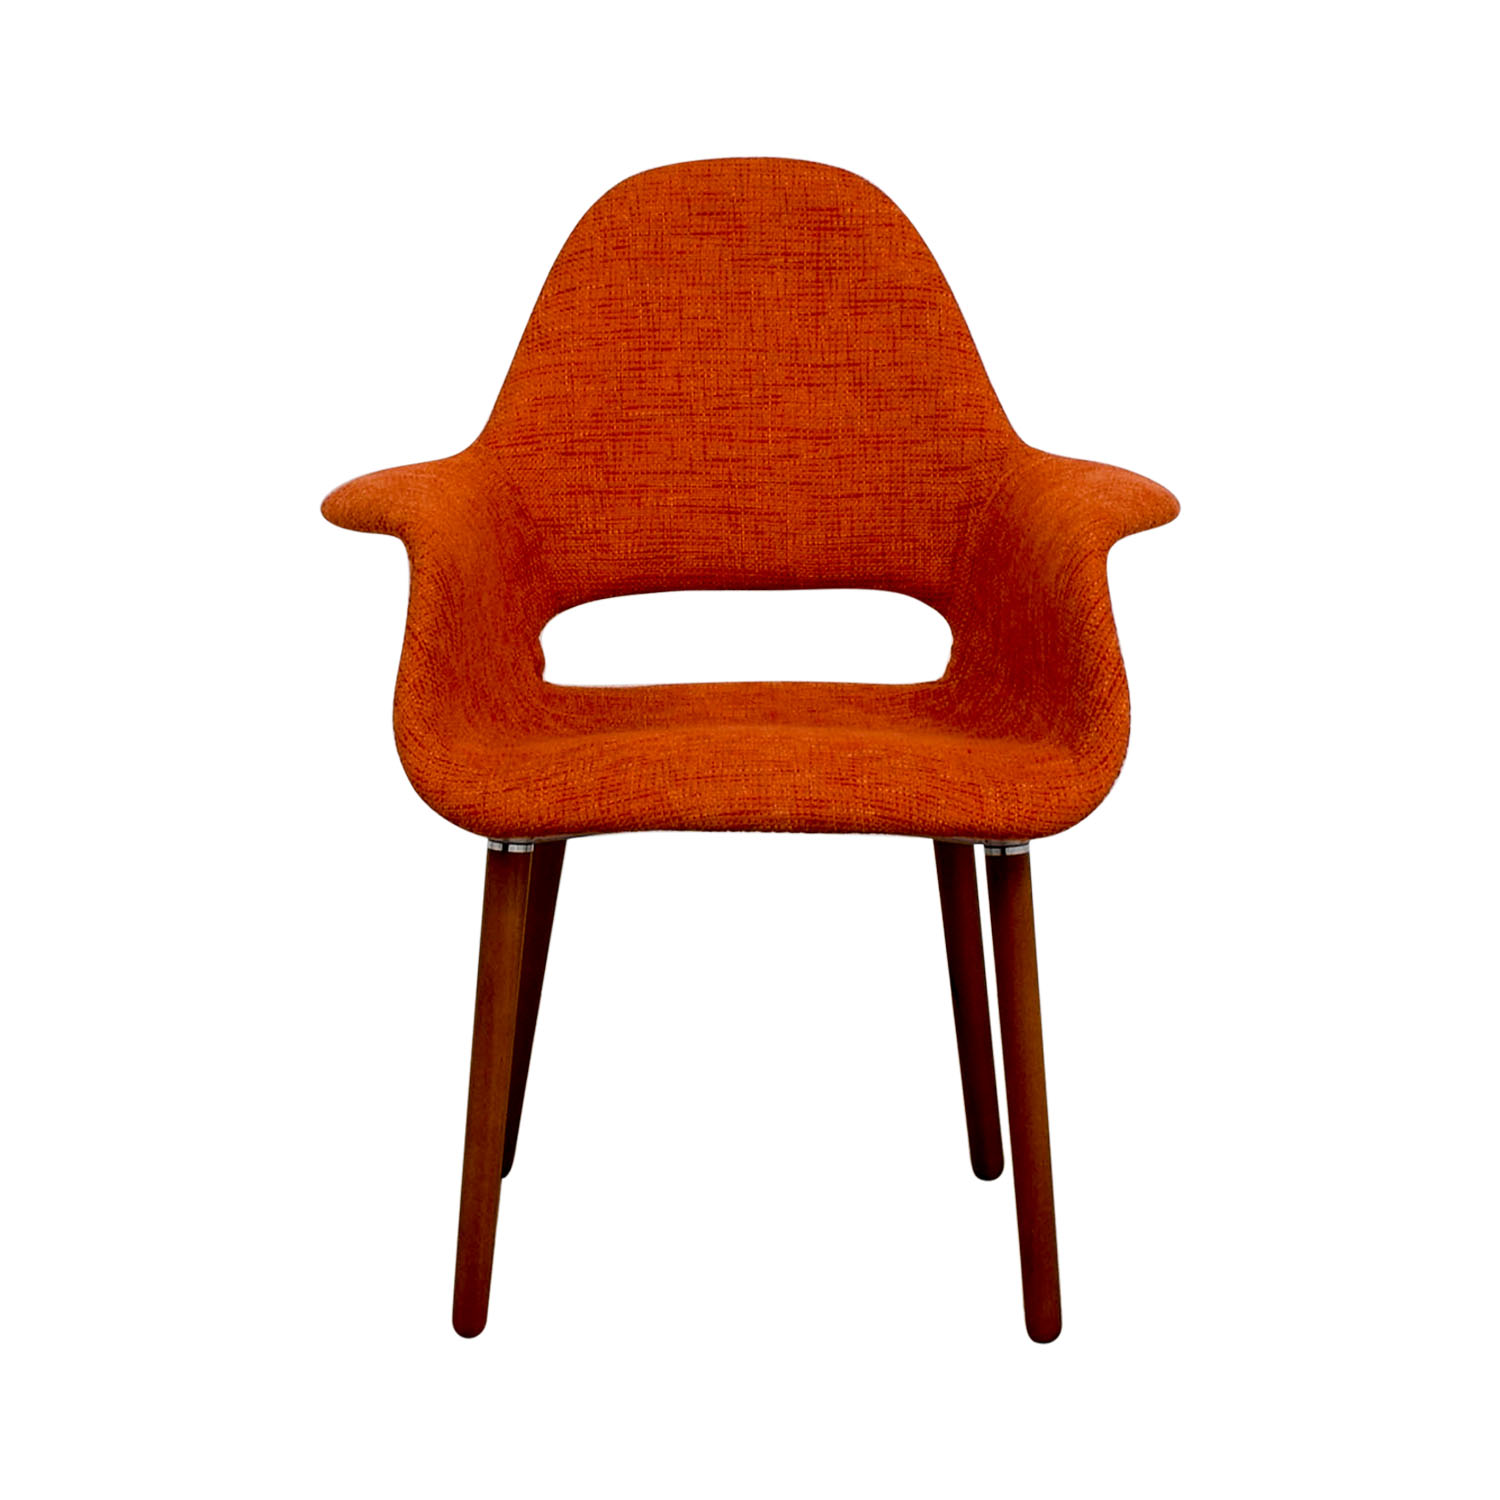 Artrio Artrio Orange Upholstered Armchair dimensions